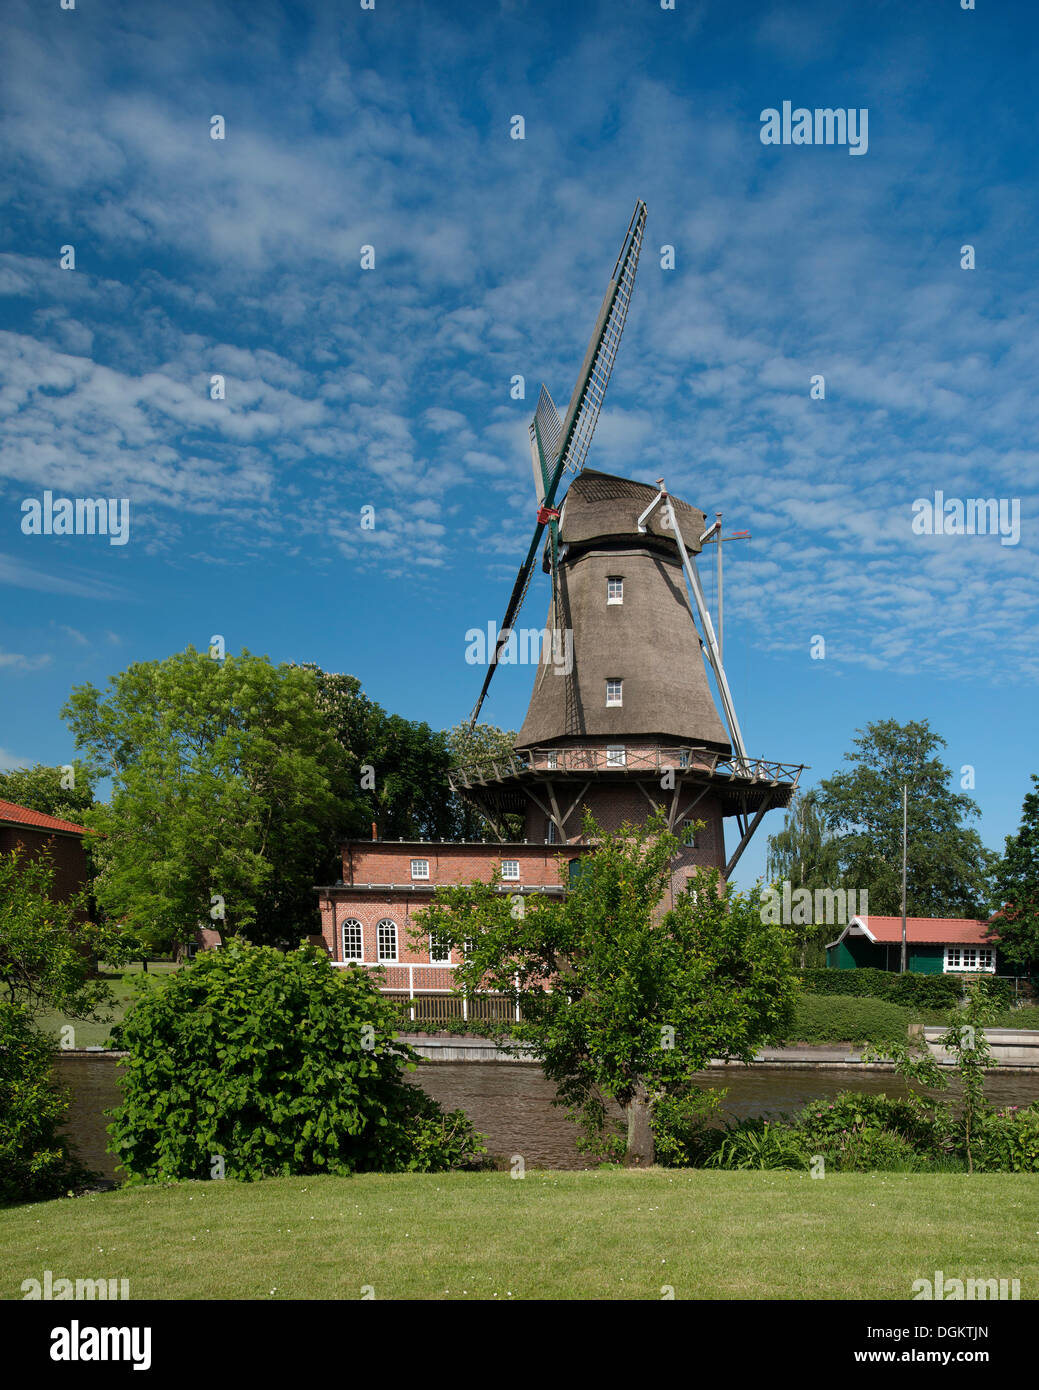 A Dutch three-storey windmill with a gallery, landmark of Hinte, East Frisia, Lower Saxony - Stock Image